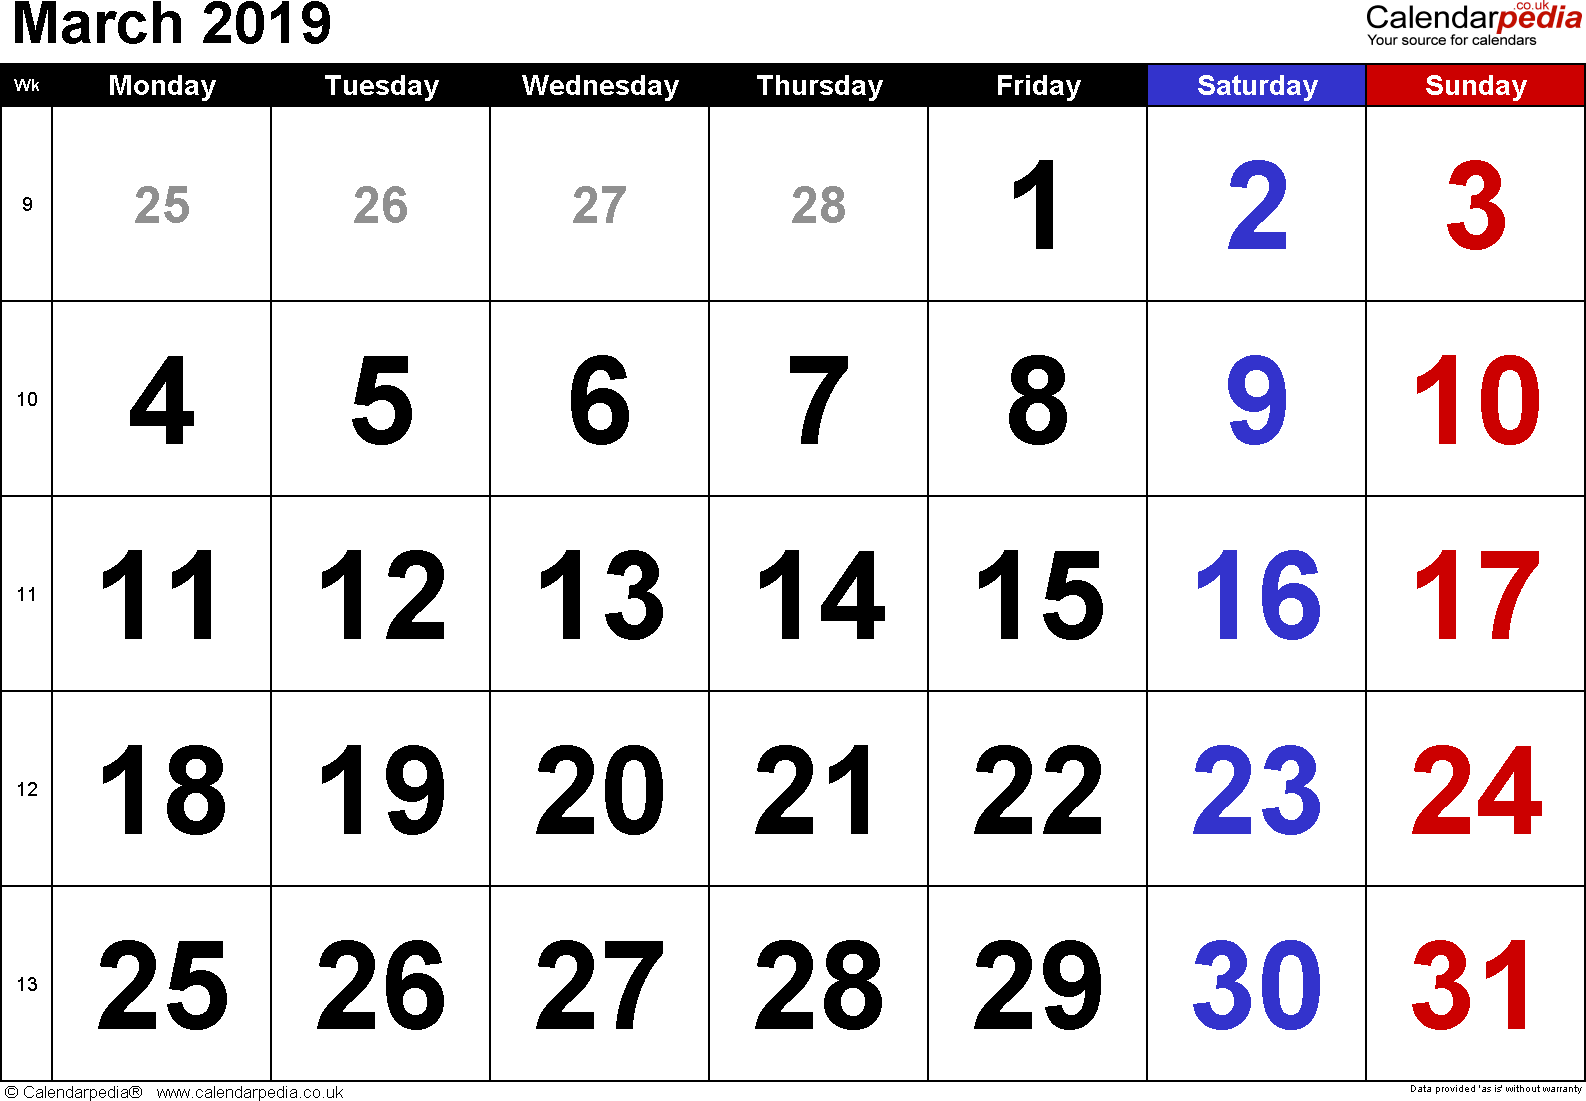 Calendar March 2019, landscape orientation, large numerals, 1 page, with UK bank holidays and week numbers